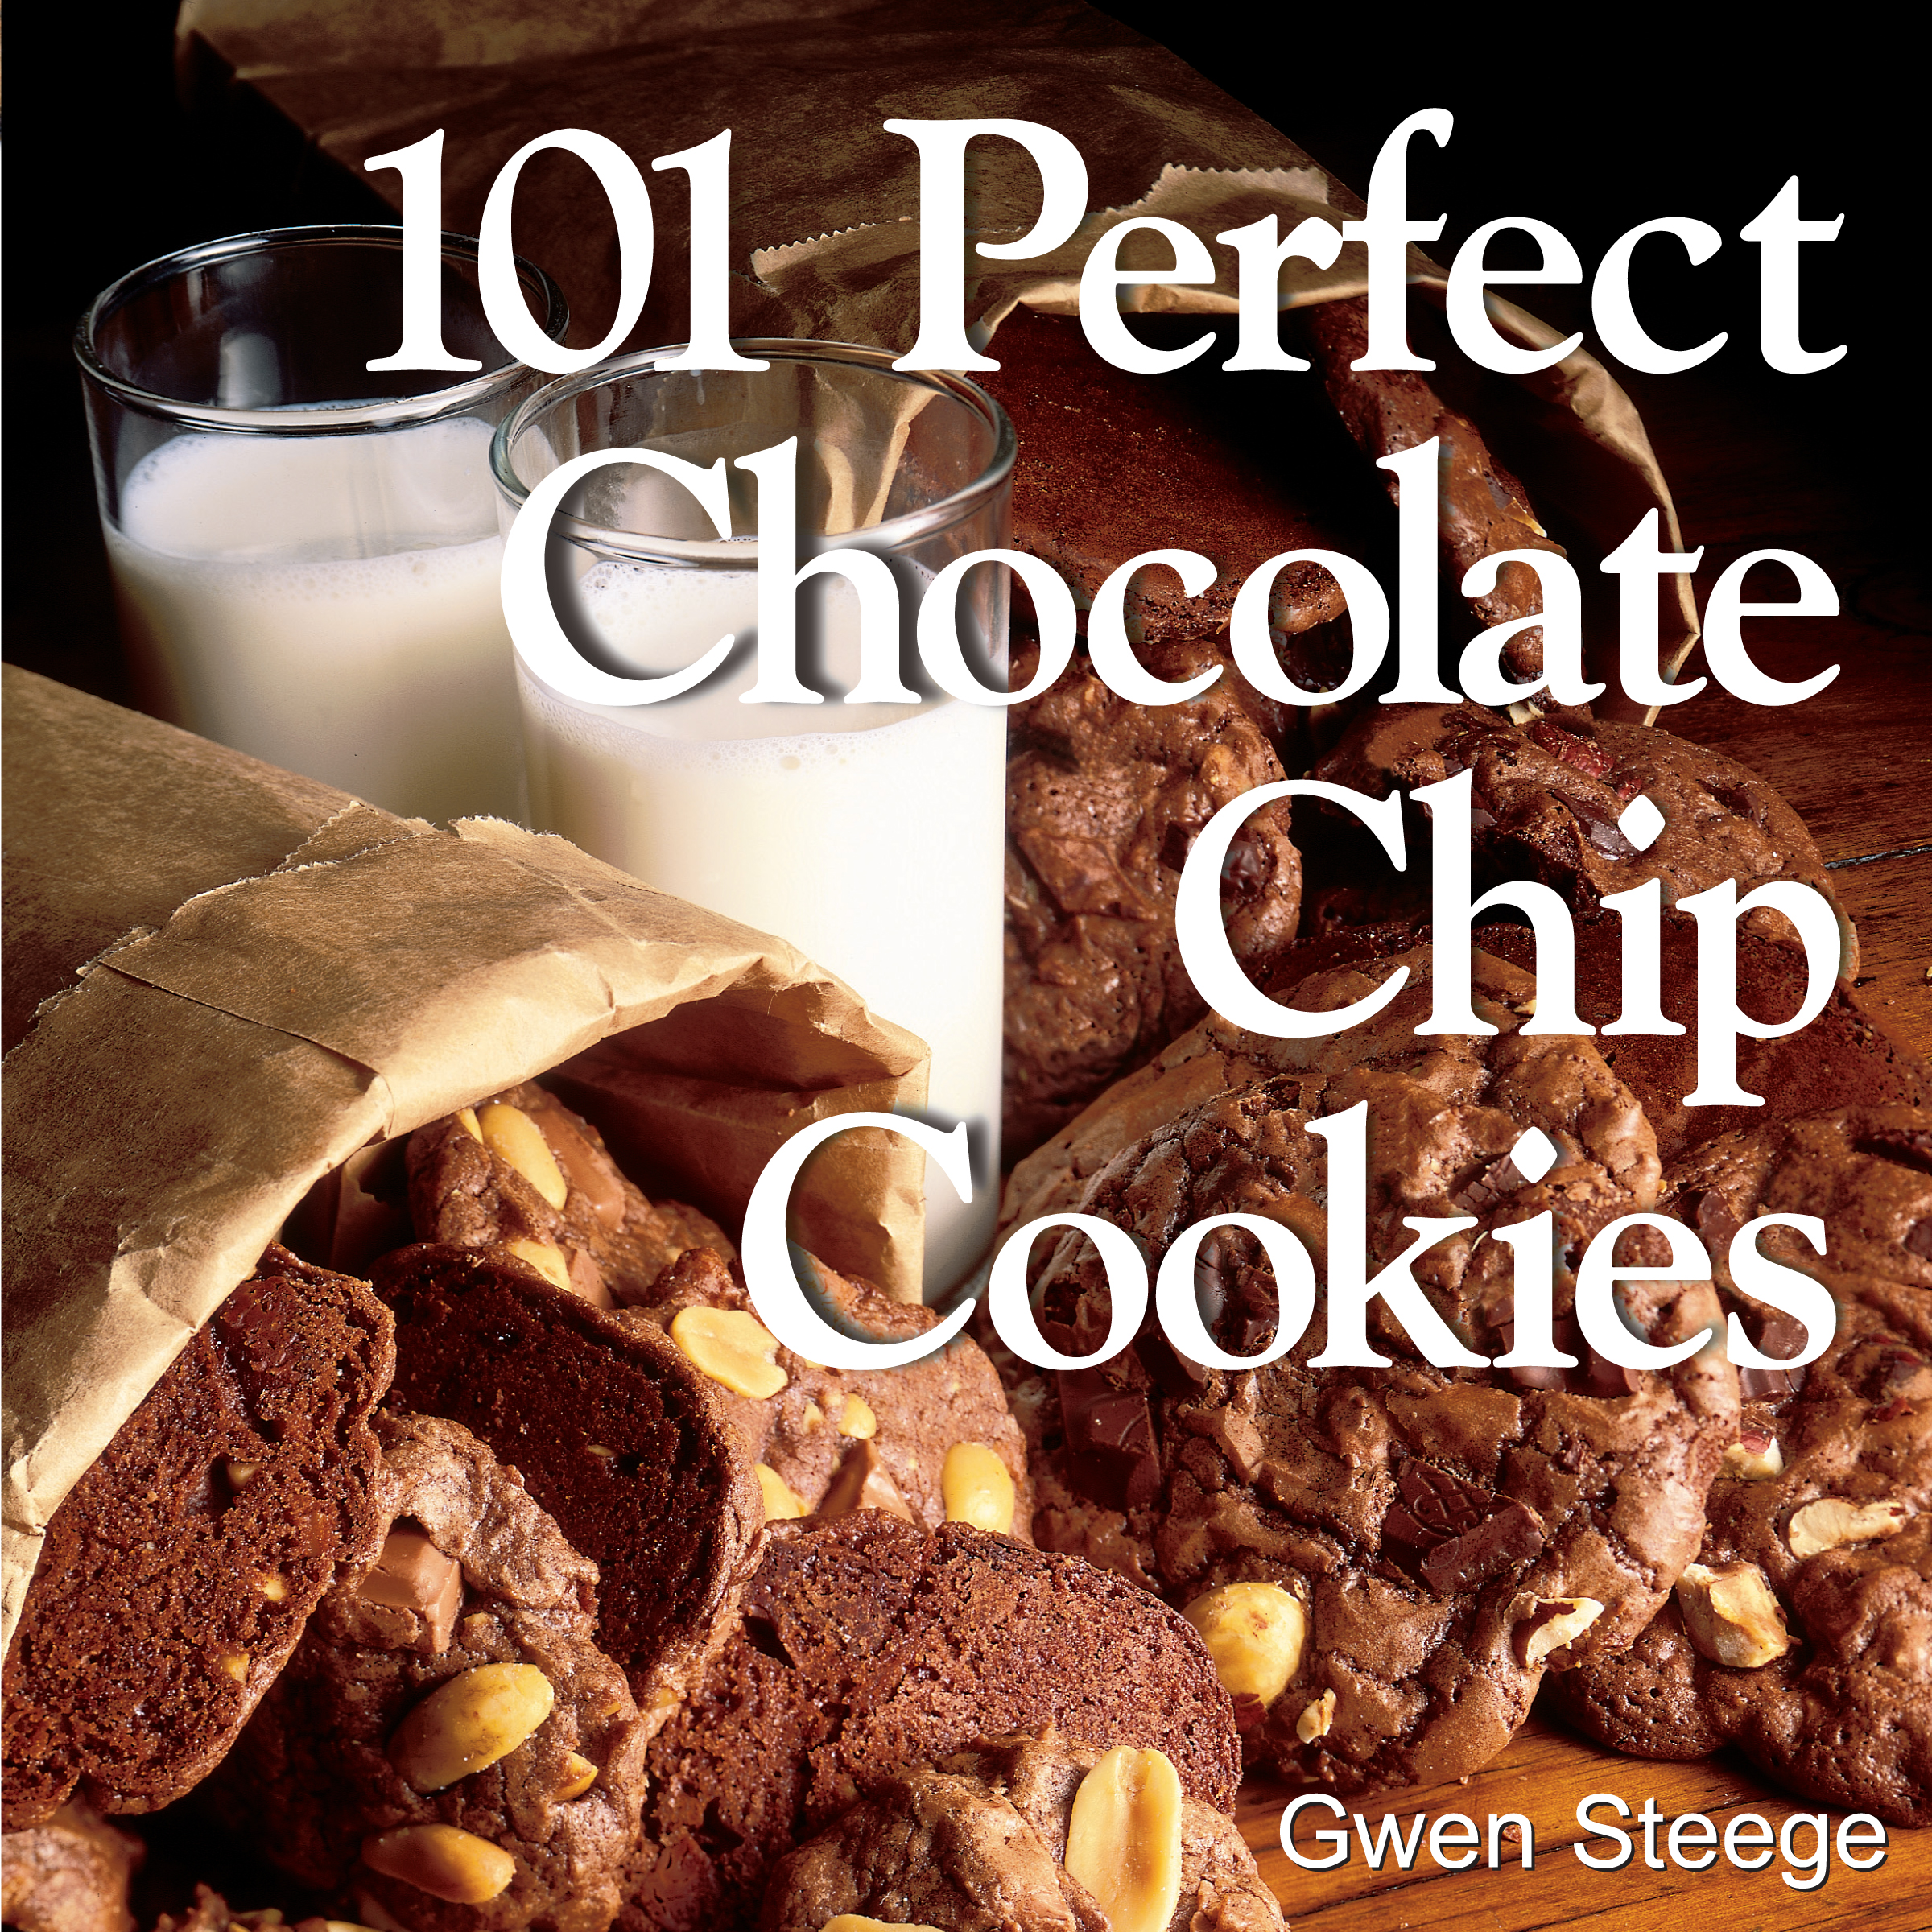 101 Perfect Chocolate Chip Cookies 101 Melt-in-Your-Mouth Recipes - Gwen W. Steege